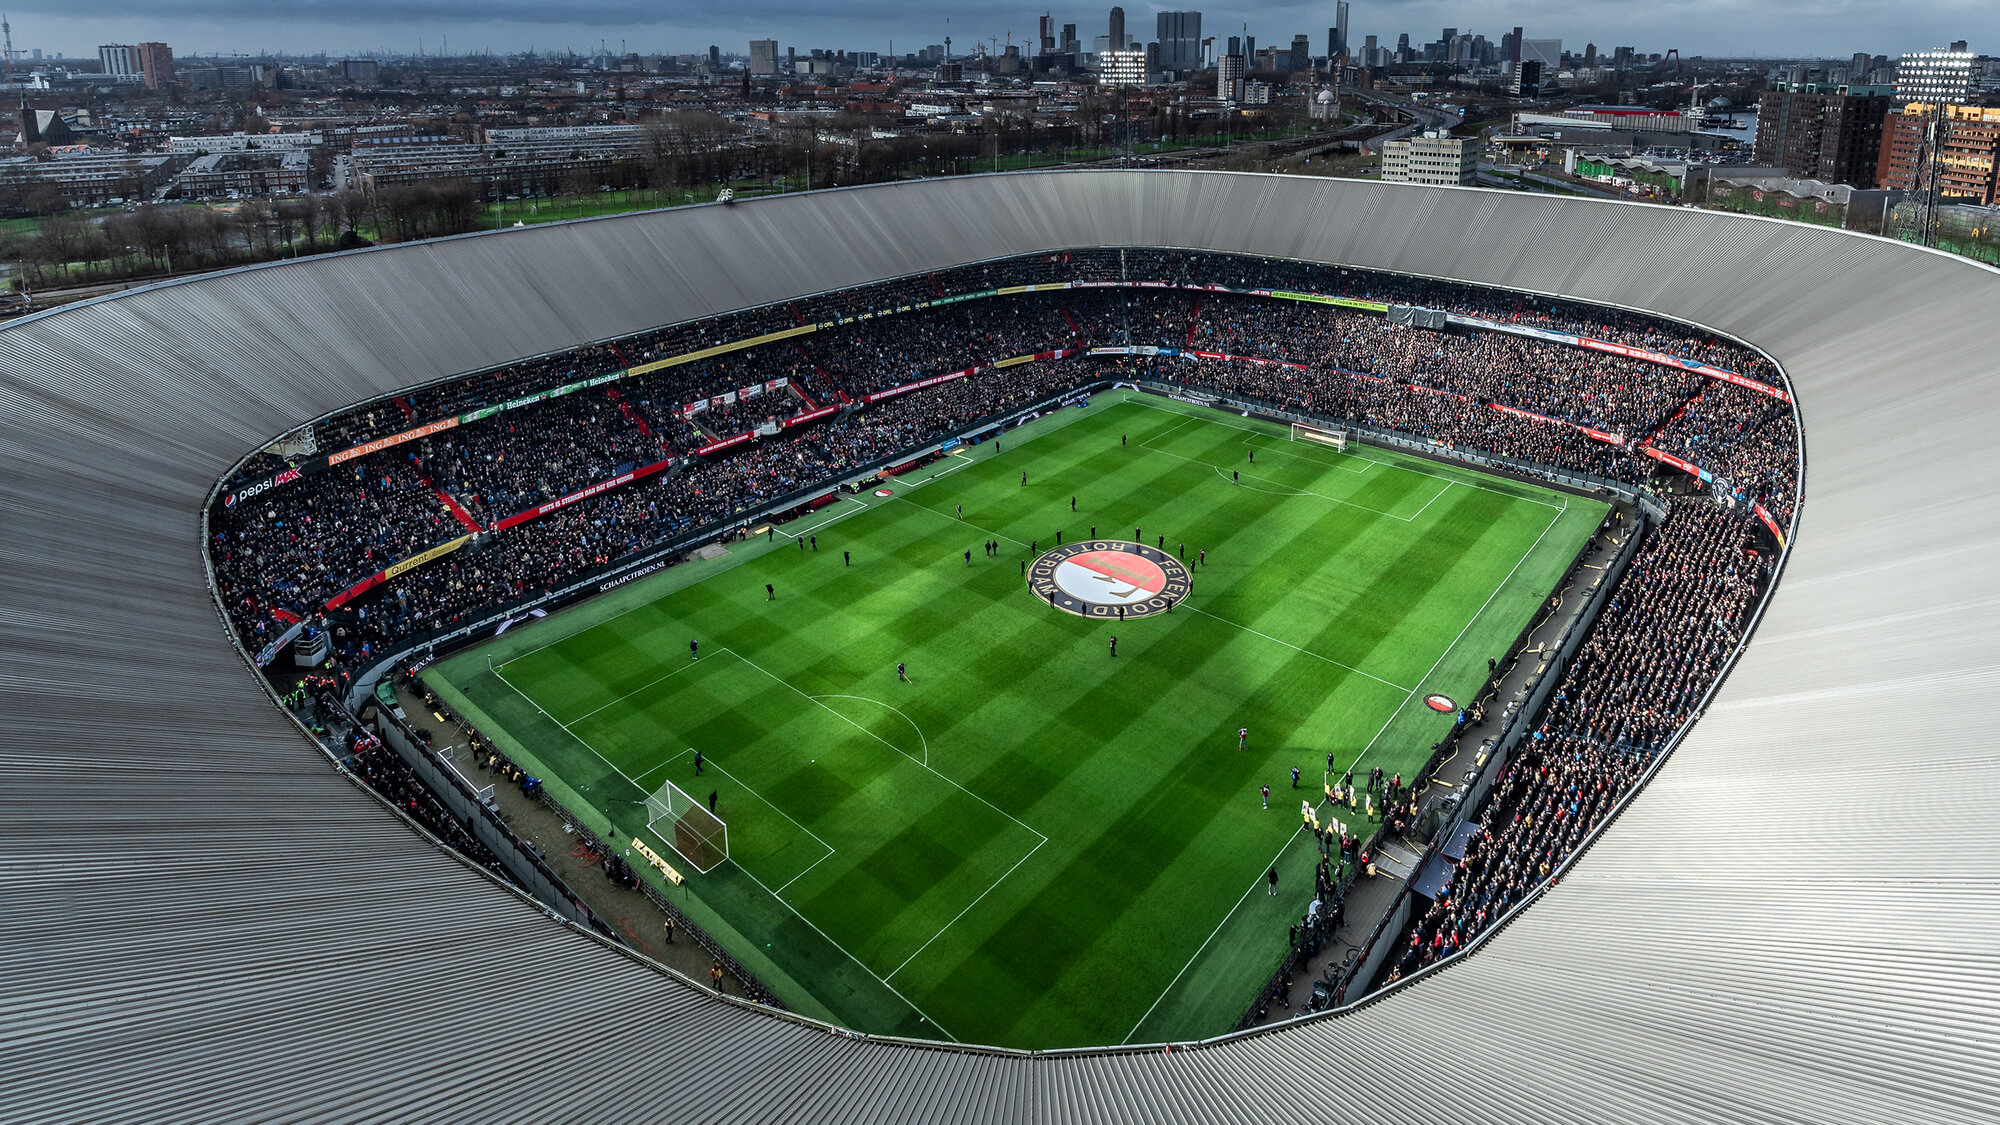 Feyenoord football club uses Leadinfo to connect with business customers